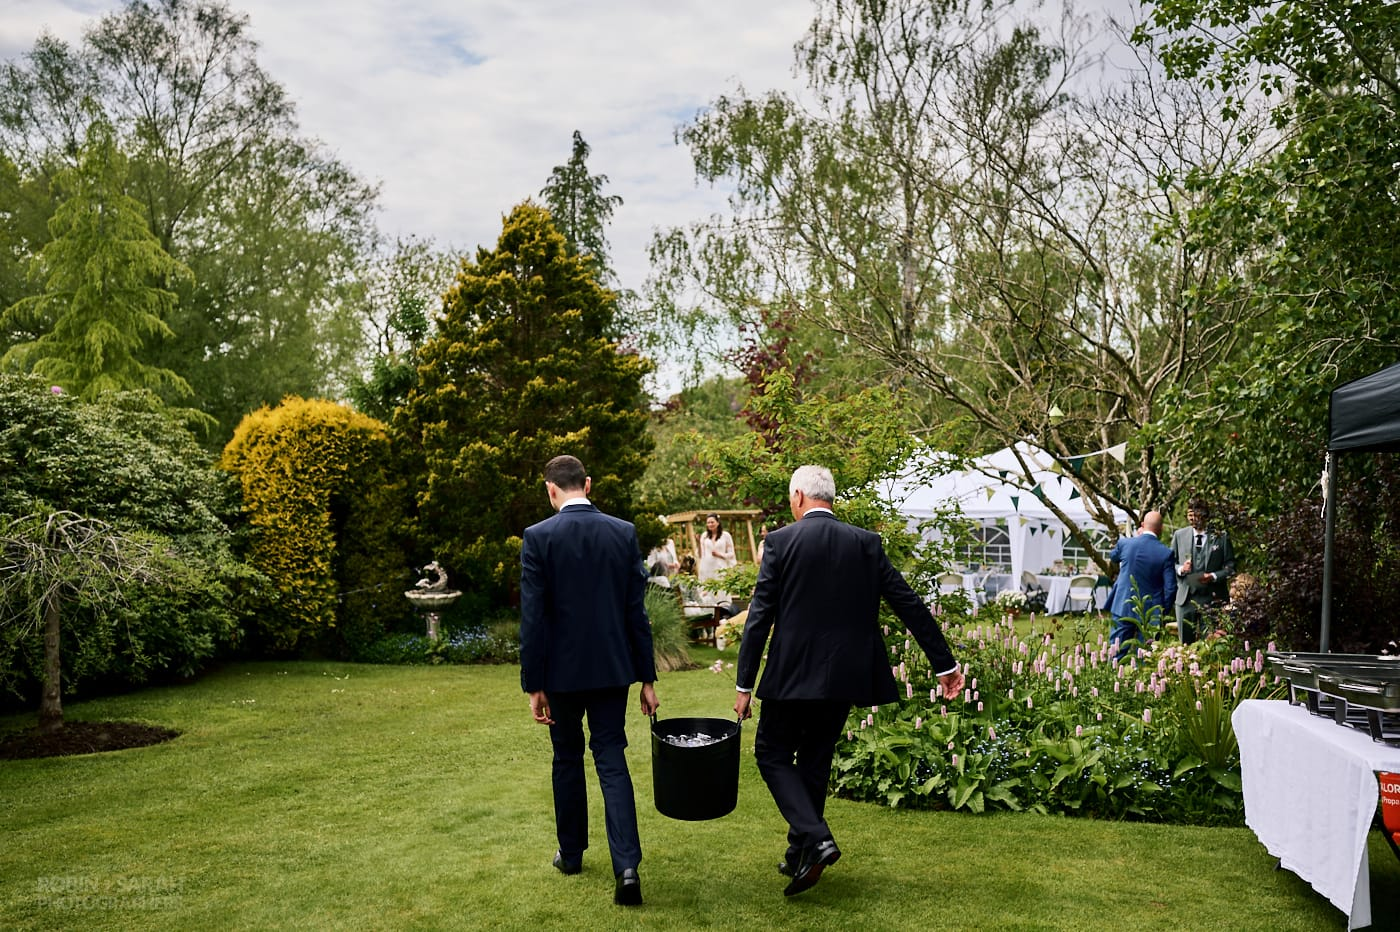 Two wedding guests carry bucket of iced drinks at home garden wedding reception